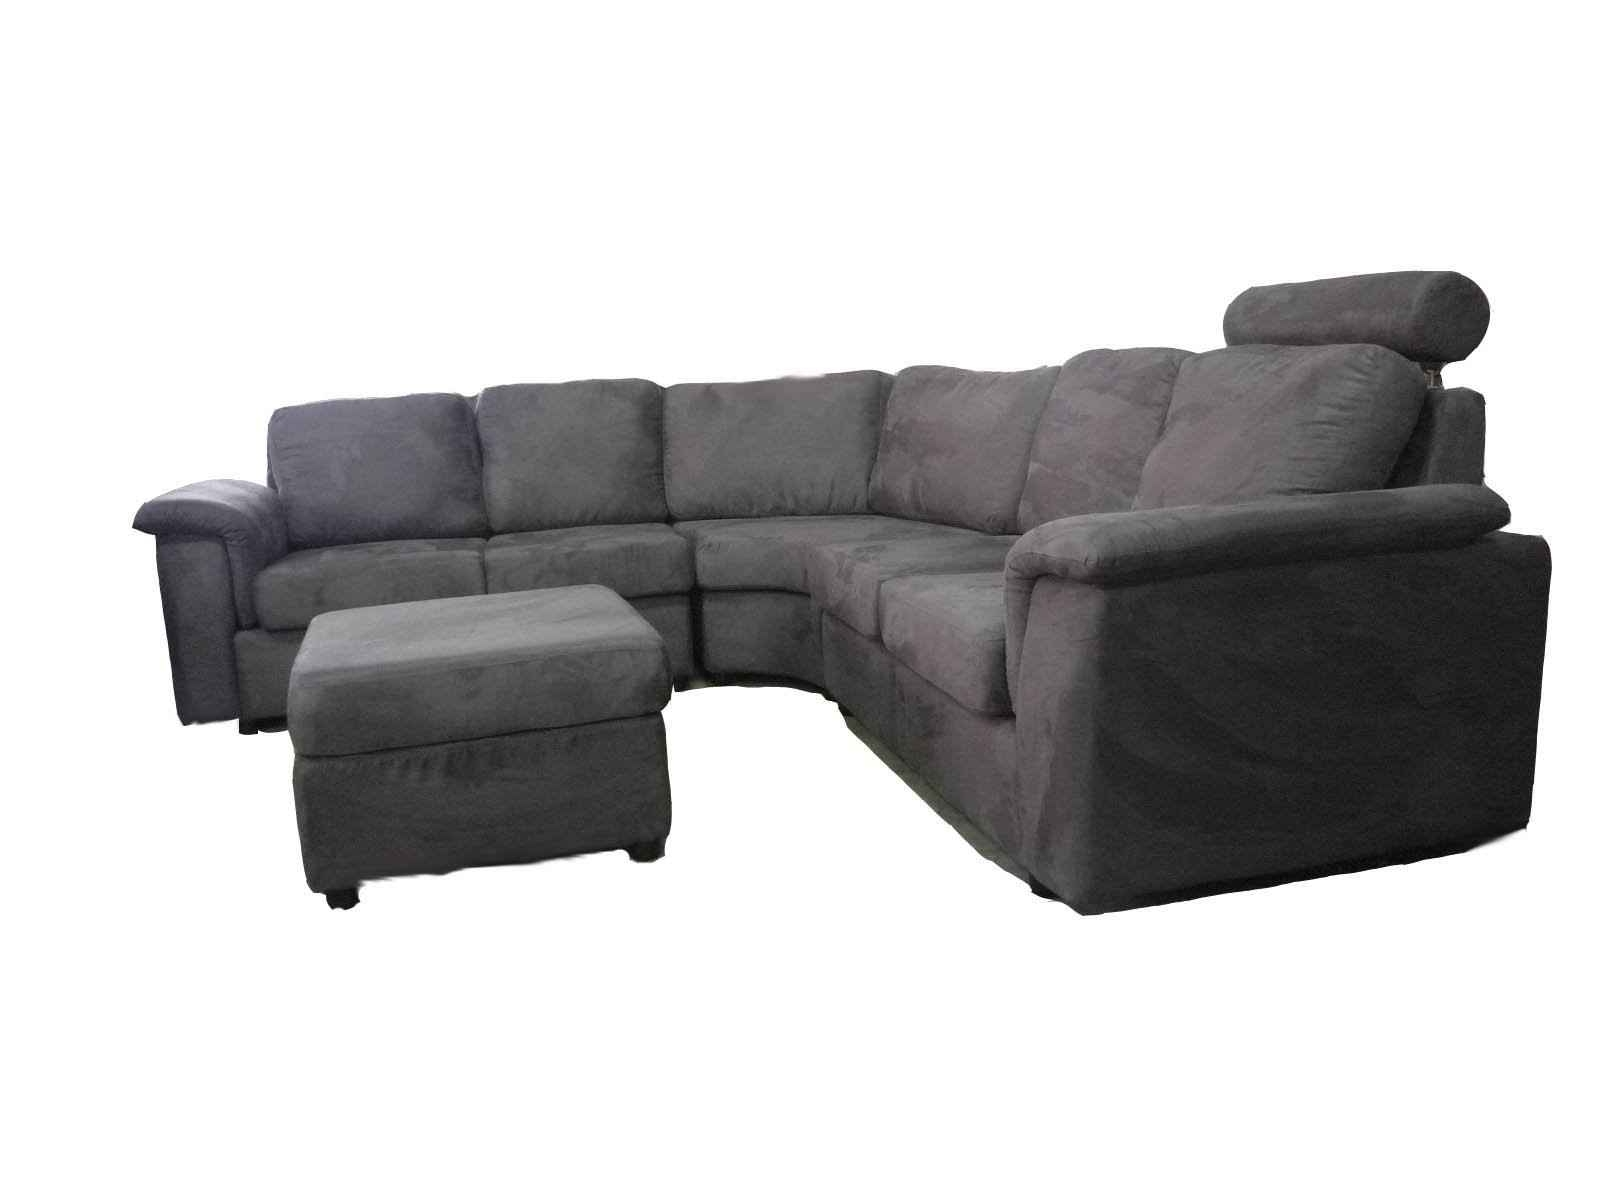 Beautiful Sectional Sofas Ikea 60 For Living Room Sofa Ideas With Inside Fashionable Sectional Sofas At Ikea (View 2 of 15)